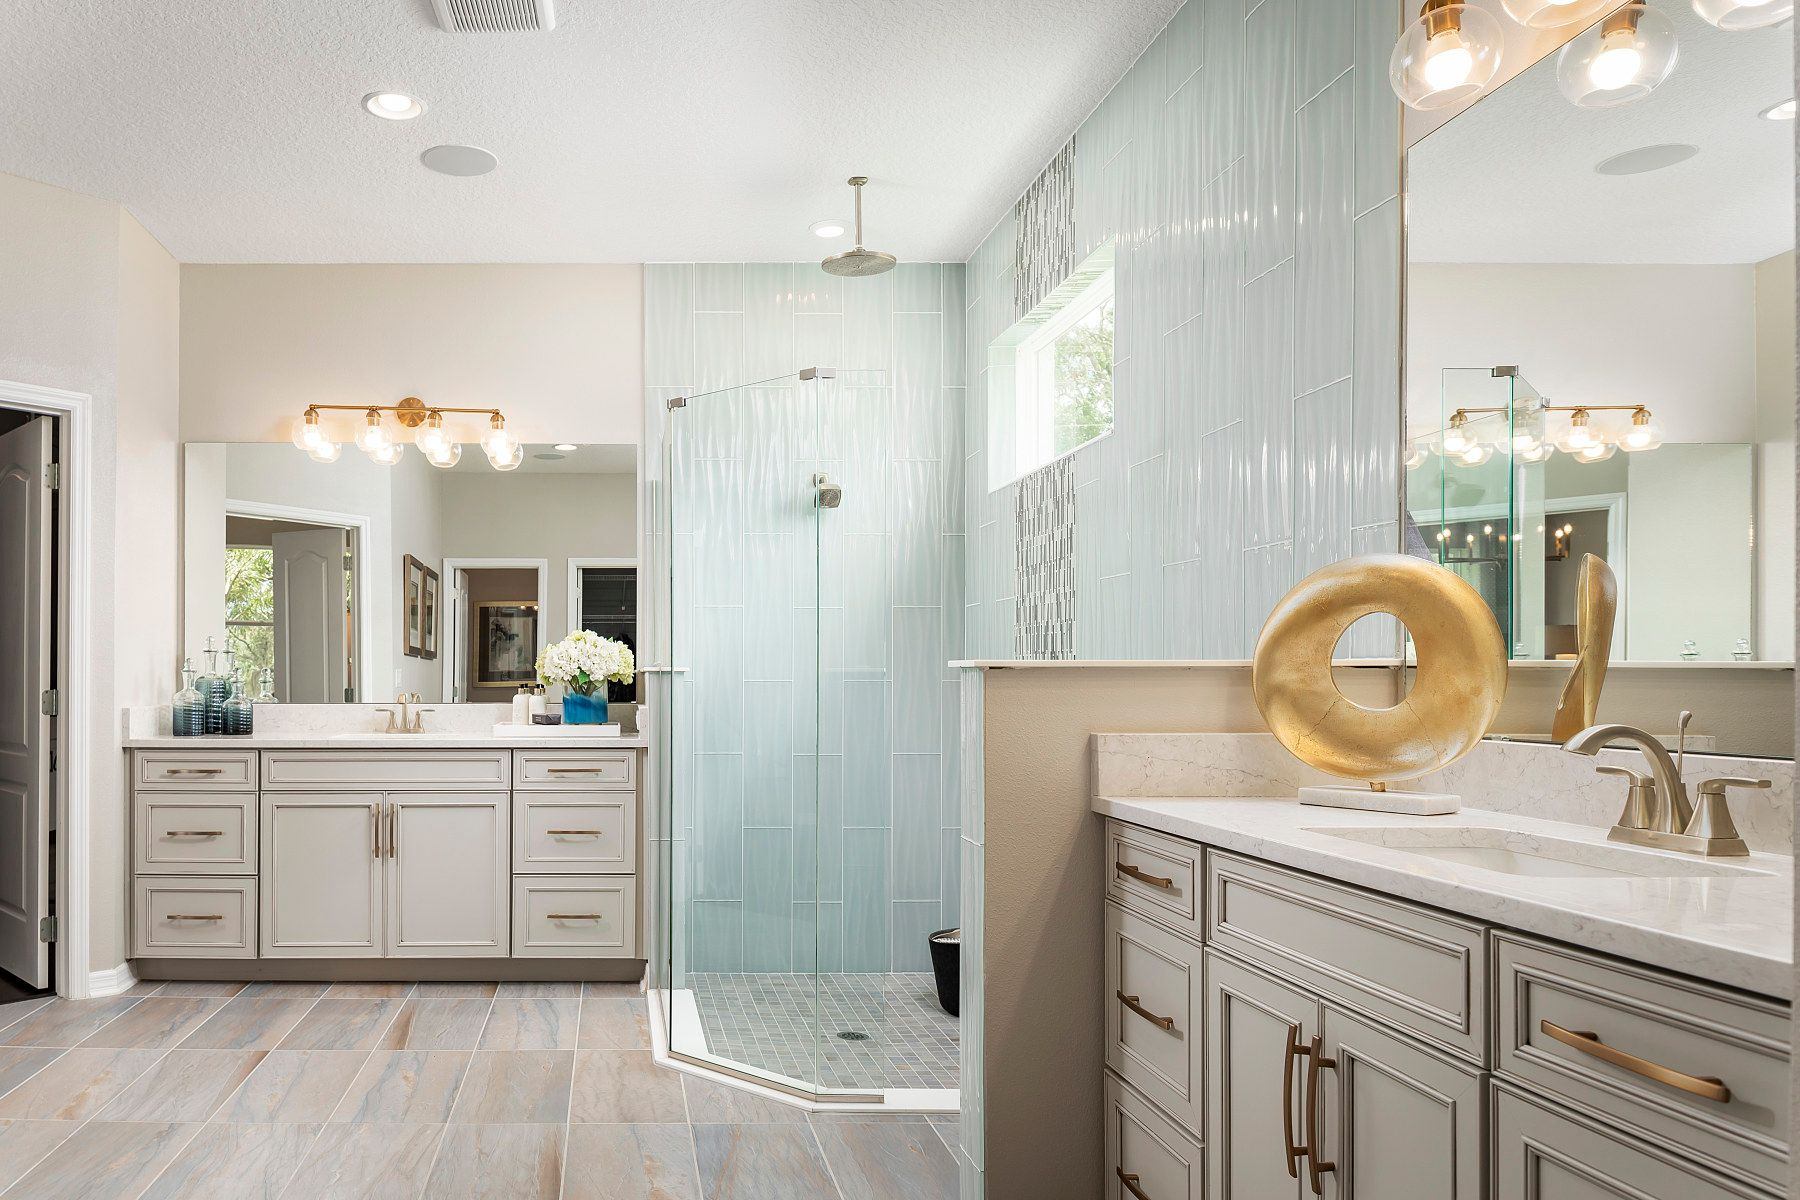 Bathroom featured in the Richmond By M/I Homes in Orlando, FL